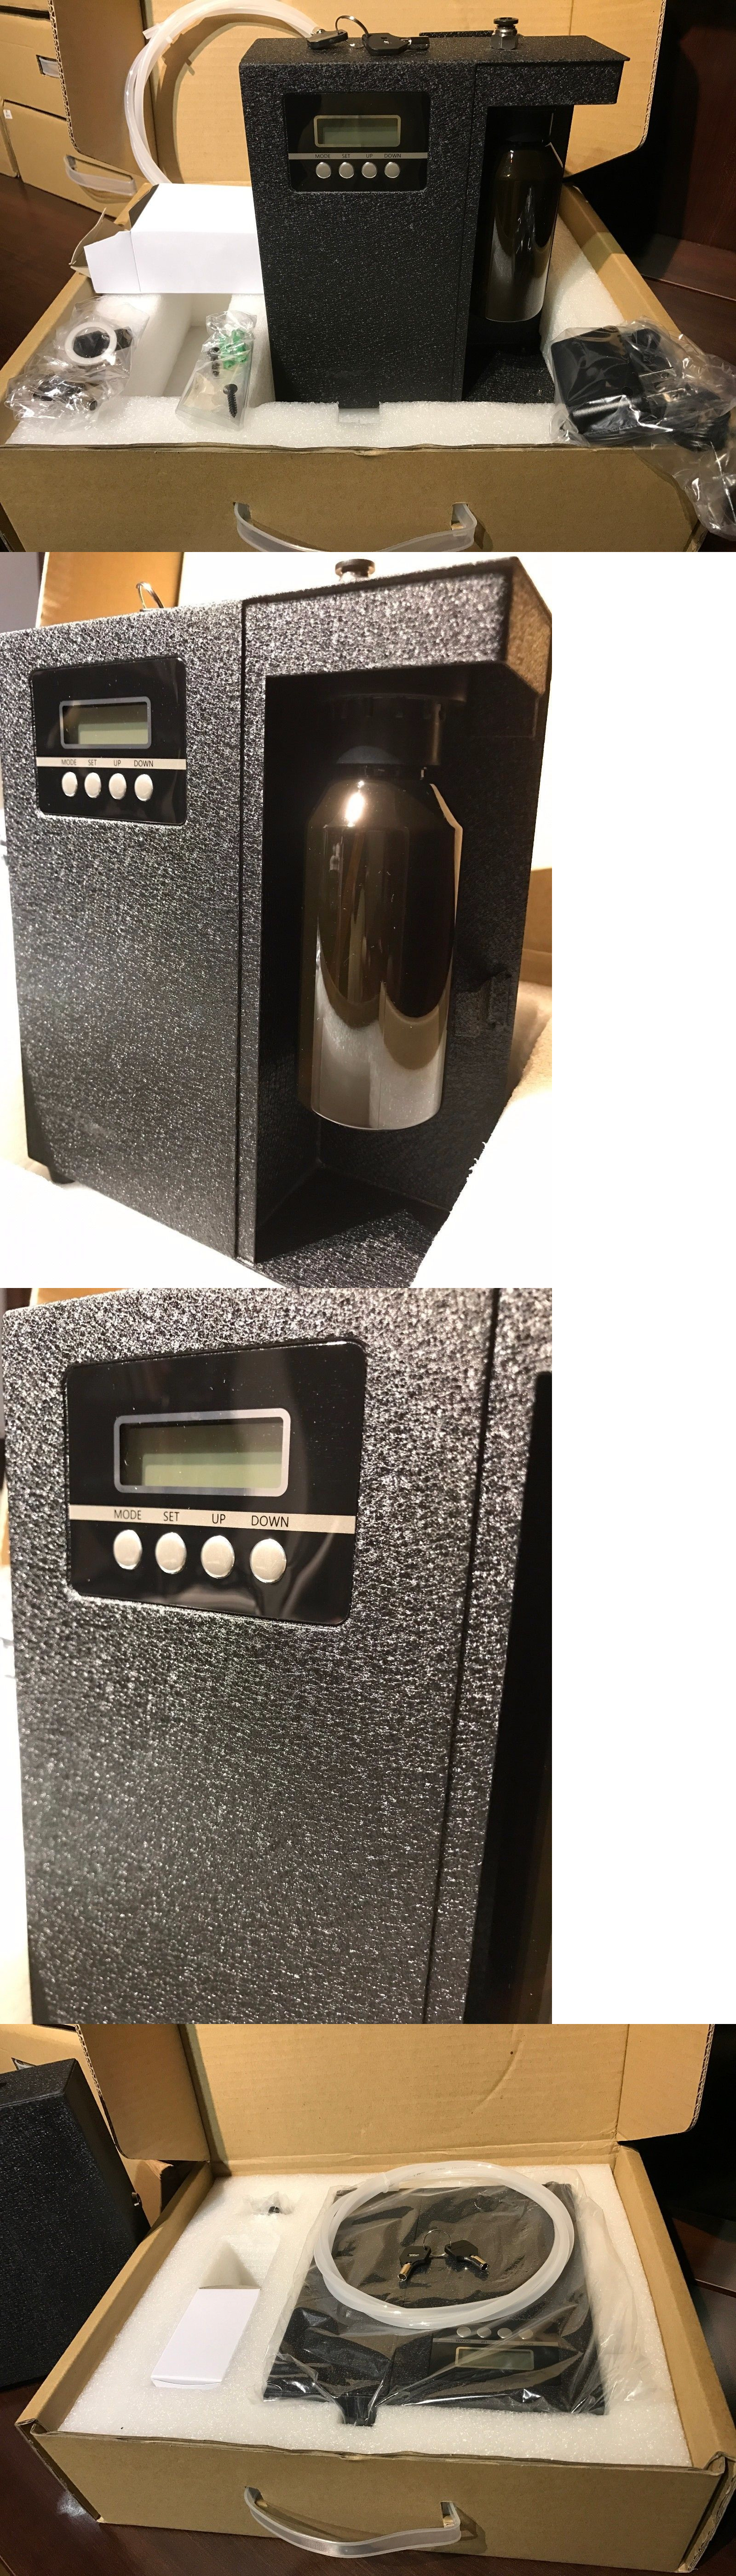 Essential Oils and Diffusers 20553: Scent Machine Fragrance Machine For Commercial And Residential Hvac Systems -> BUY IT NOW ONLY: $250 on eBay!